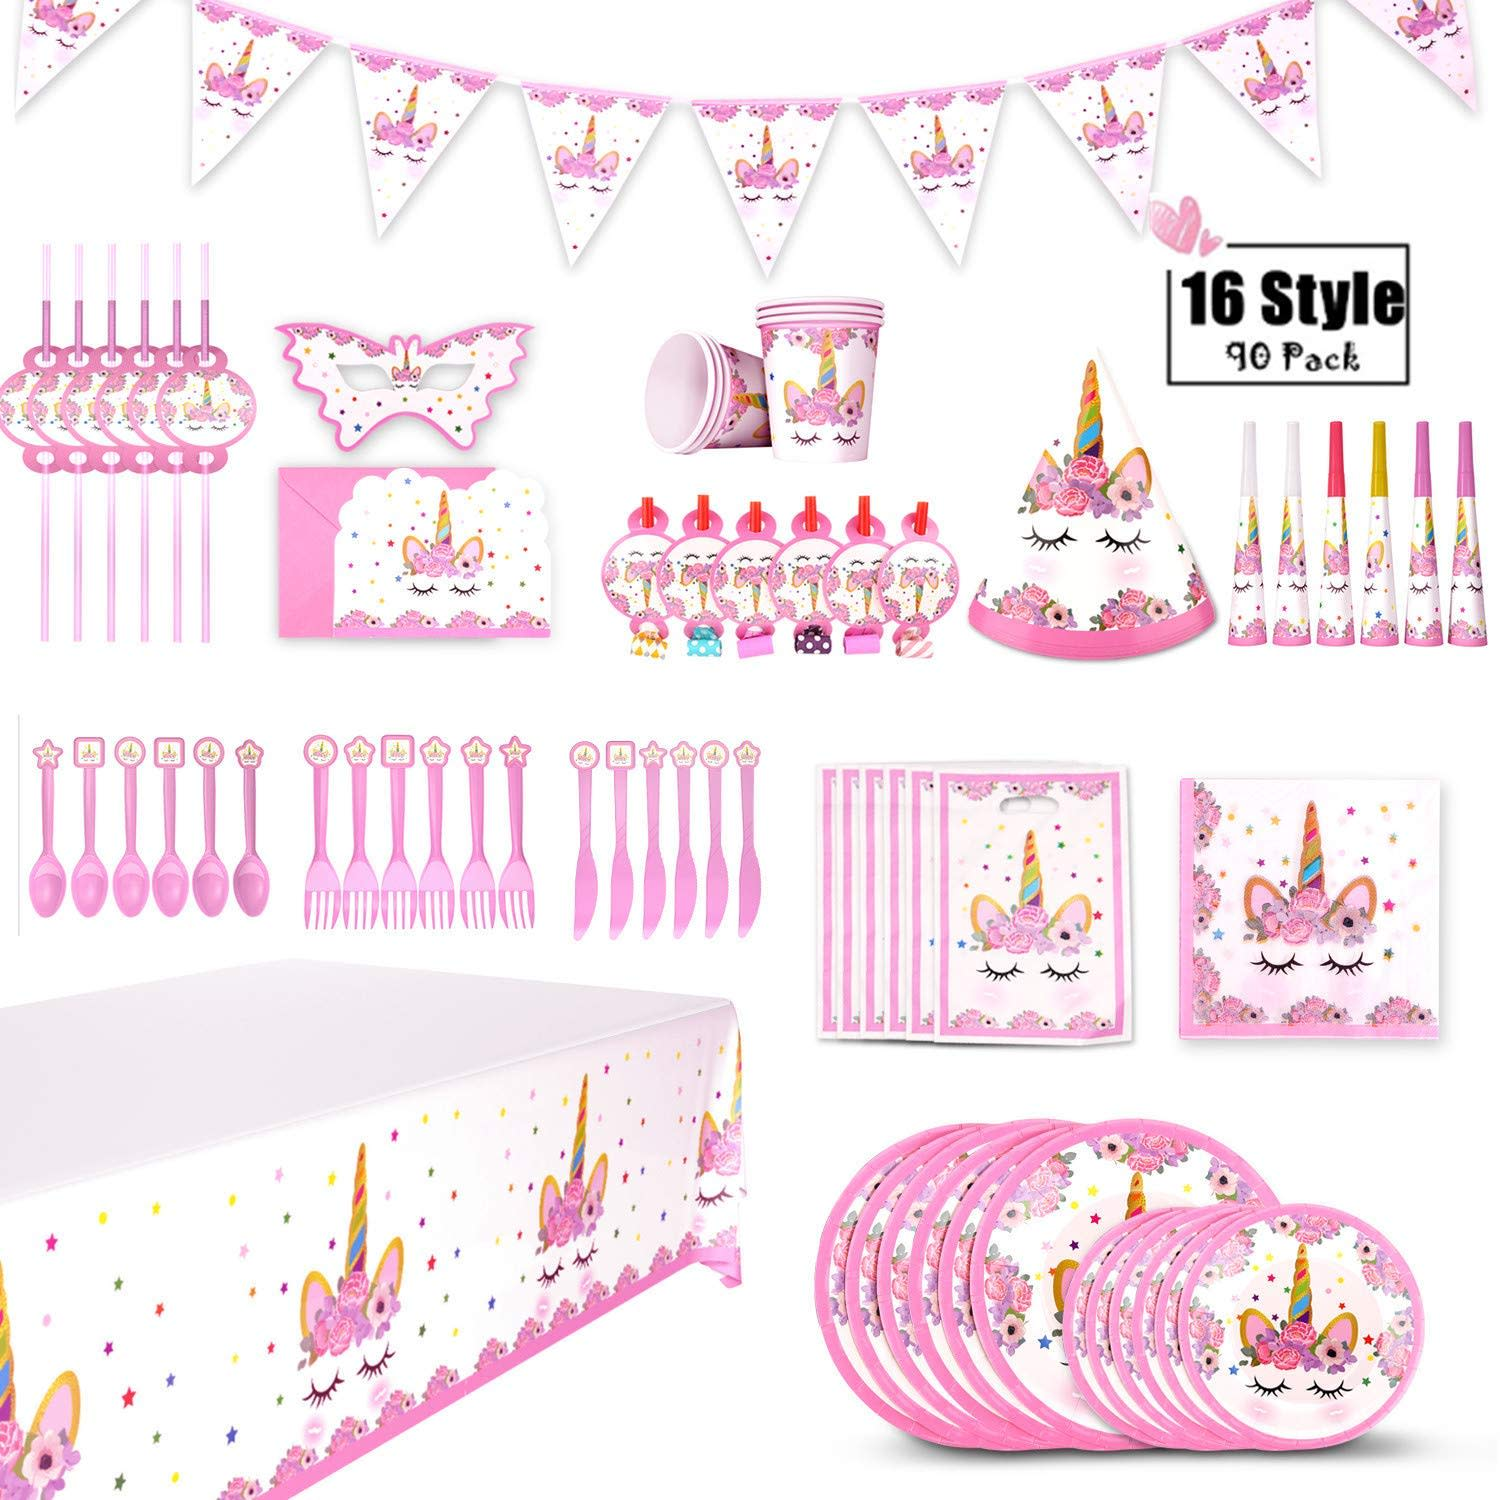 Best Party Supplies For Sale & Discount Party Supplies